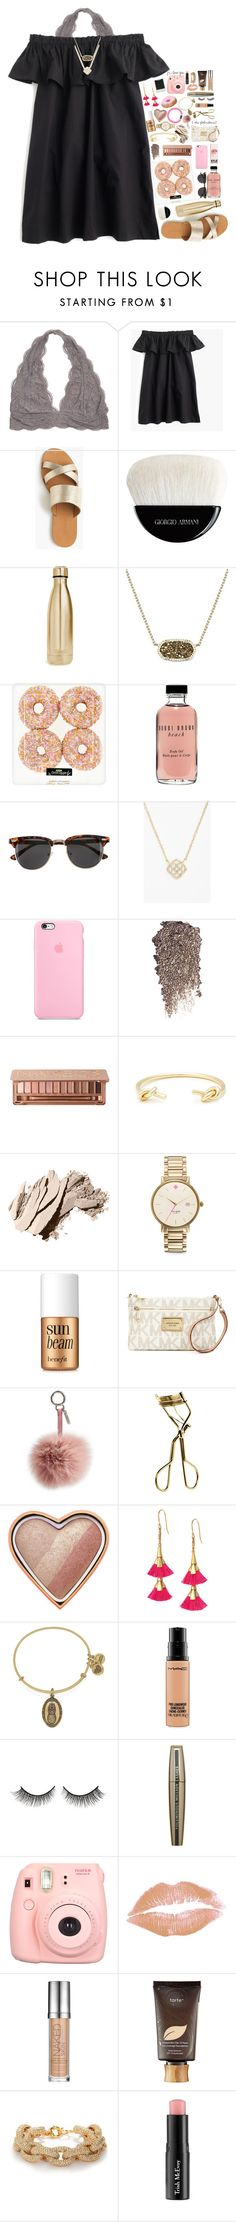 """take me to paris"" by kate-elizabethh ❤ liked on Polyvore featuring J.Crew, Giorgio Armani, S'well, Kendra Scott, Bobbi Brown Cosmetics, H&M, Urban Decay, Sole Society, Kate Spade and Benefit"